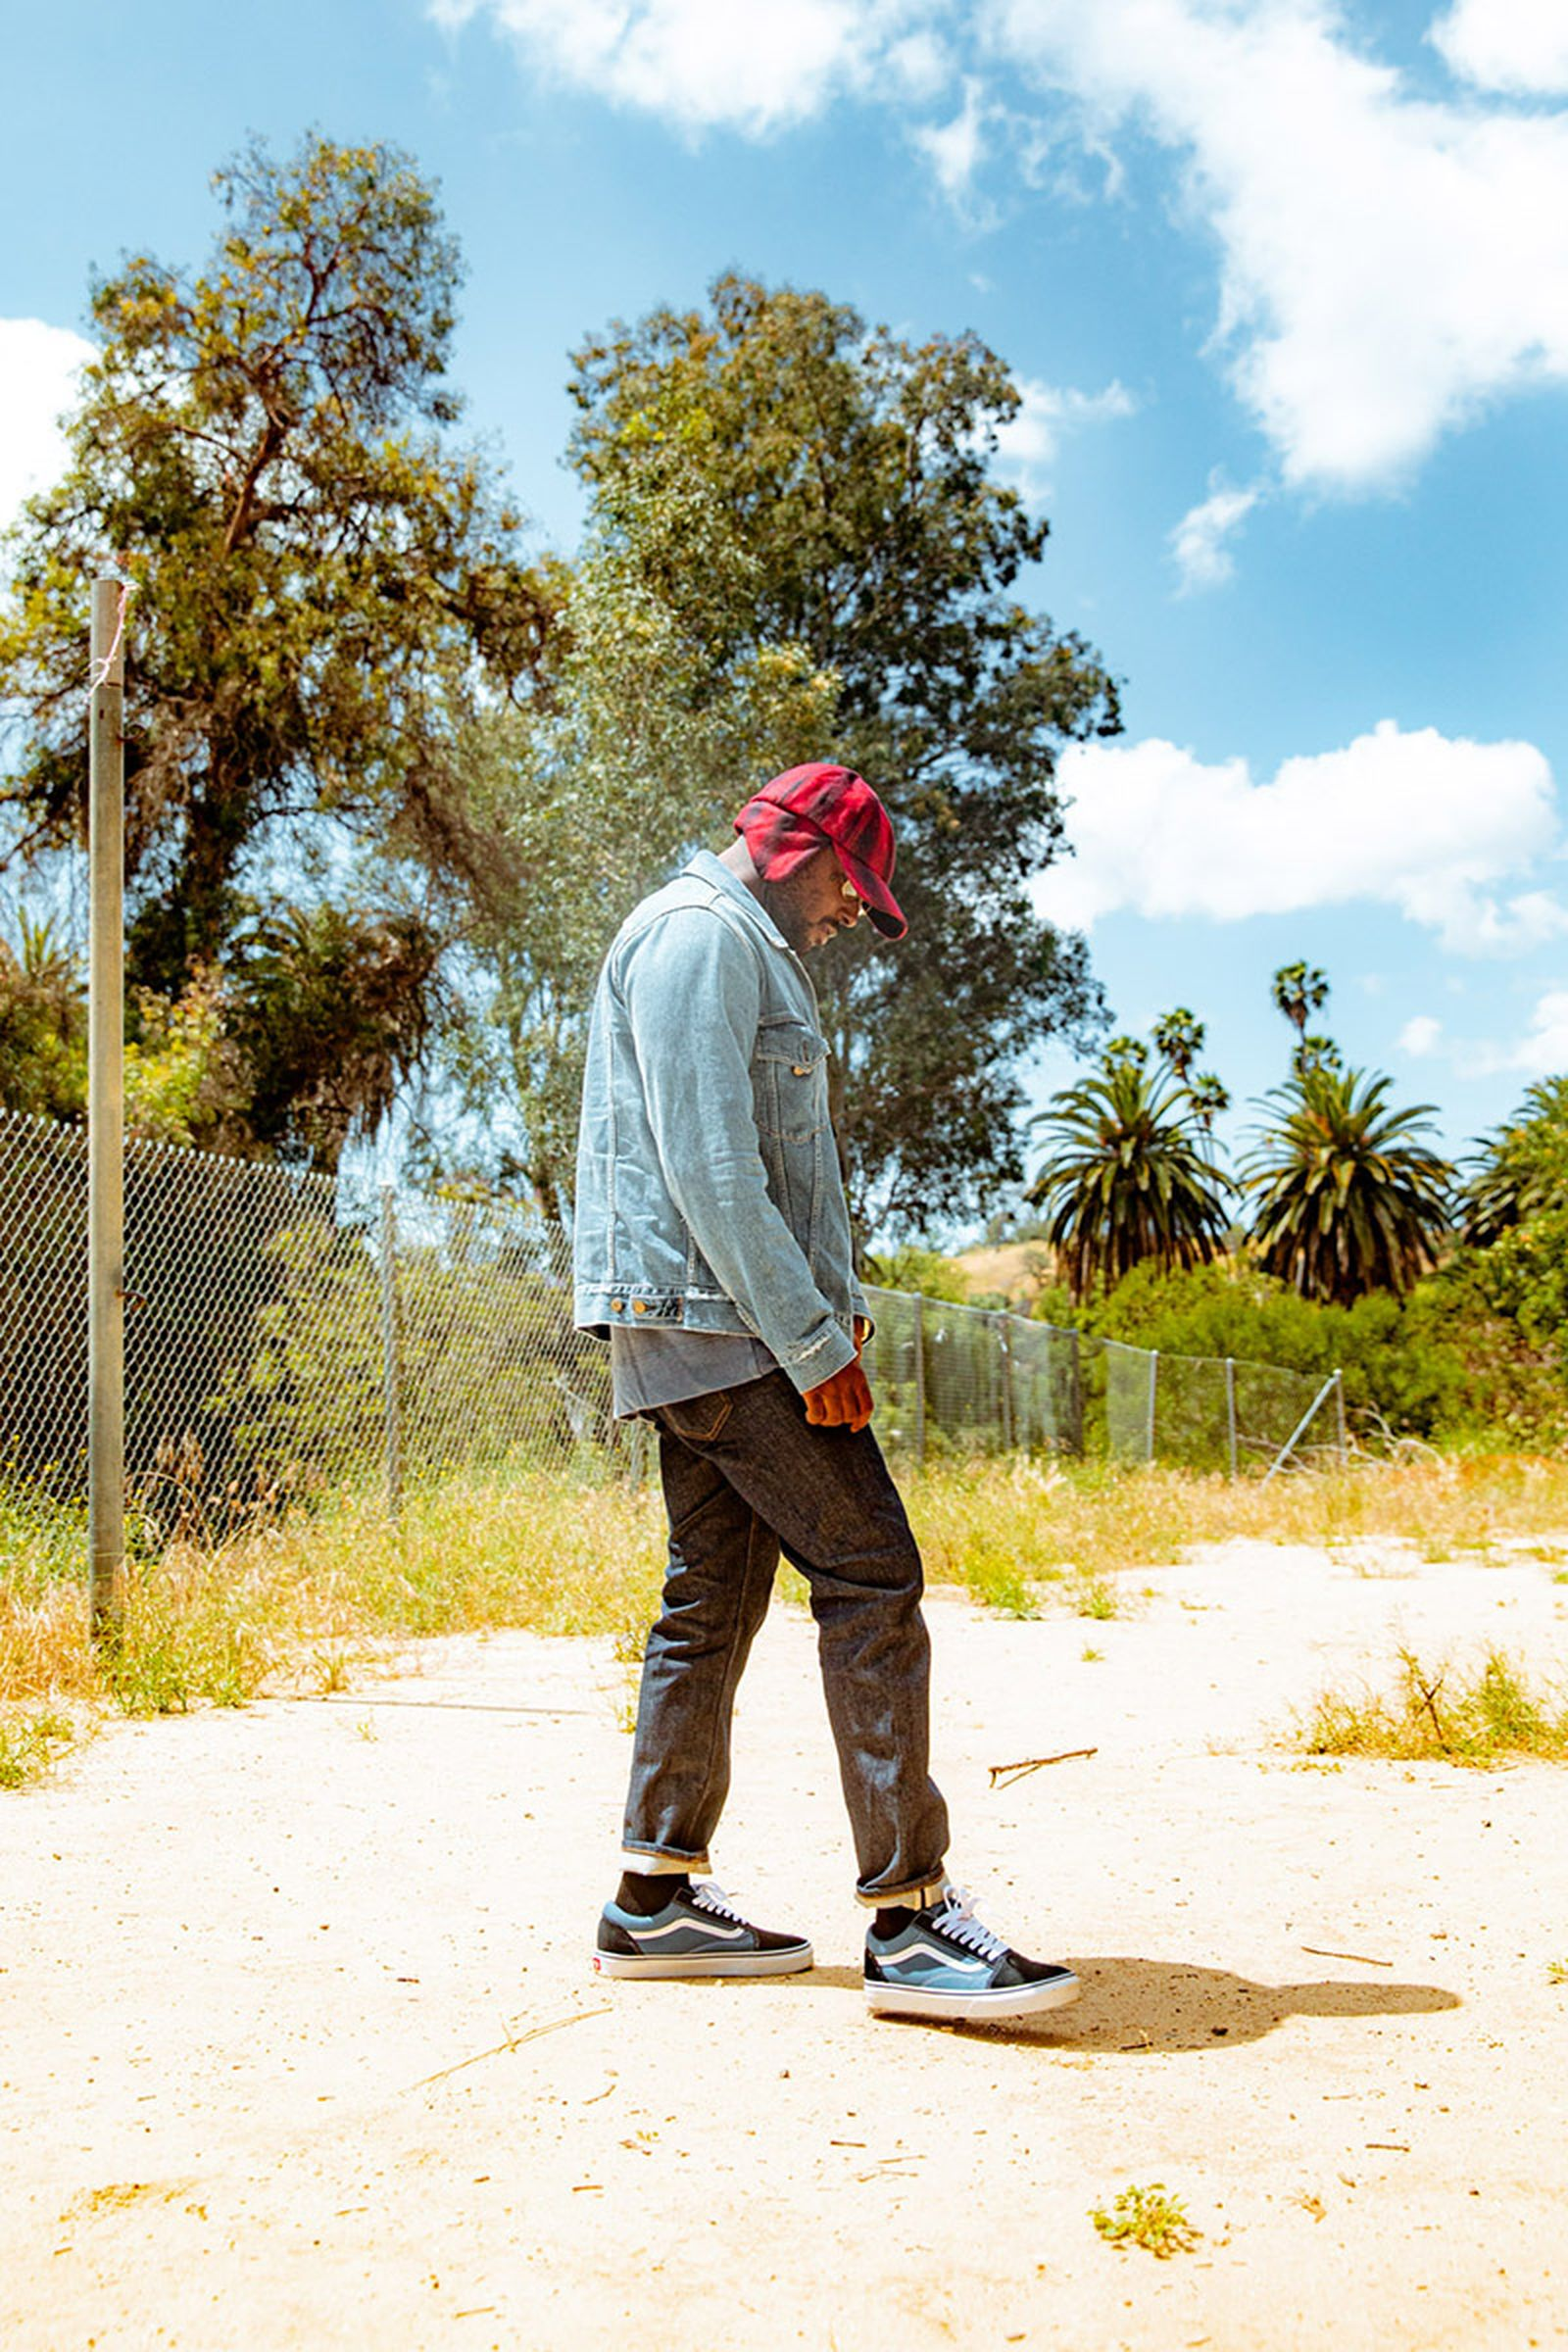 schoolboy-q-found-bliss-golf-course-02